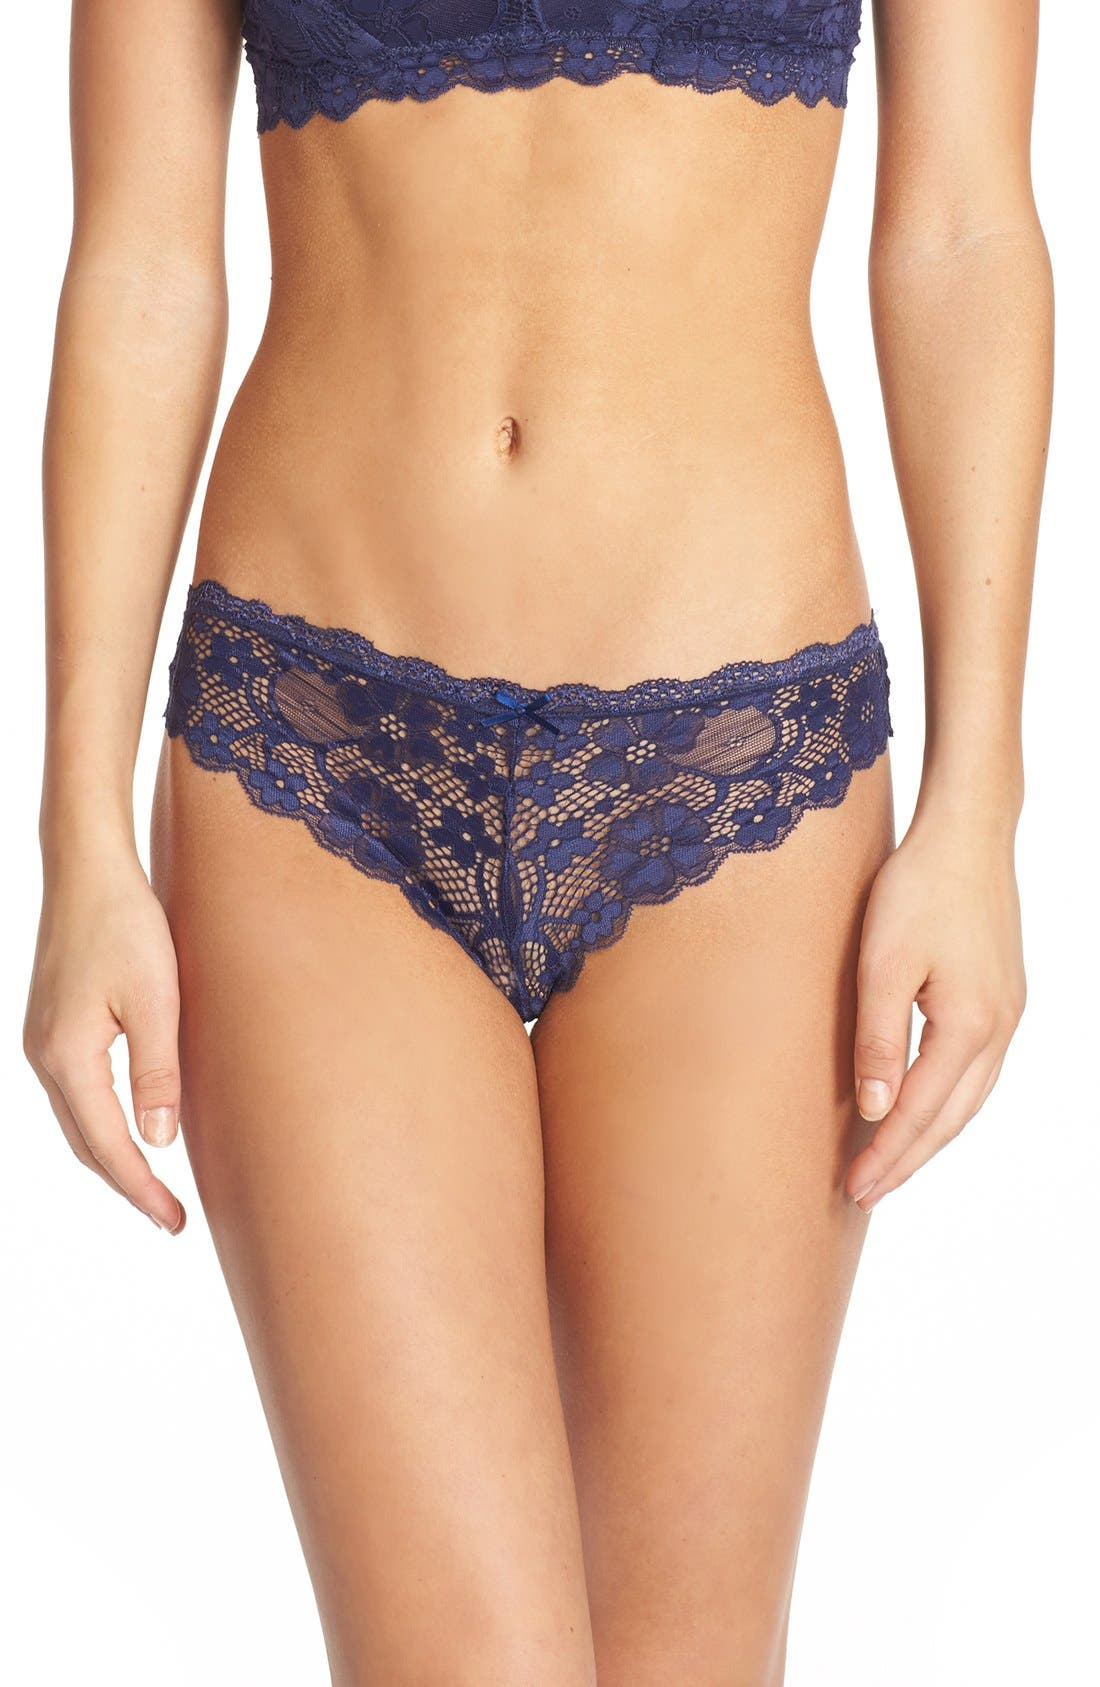 Honeydew Intimates Camellia Lace Thong